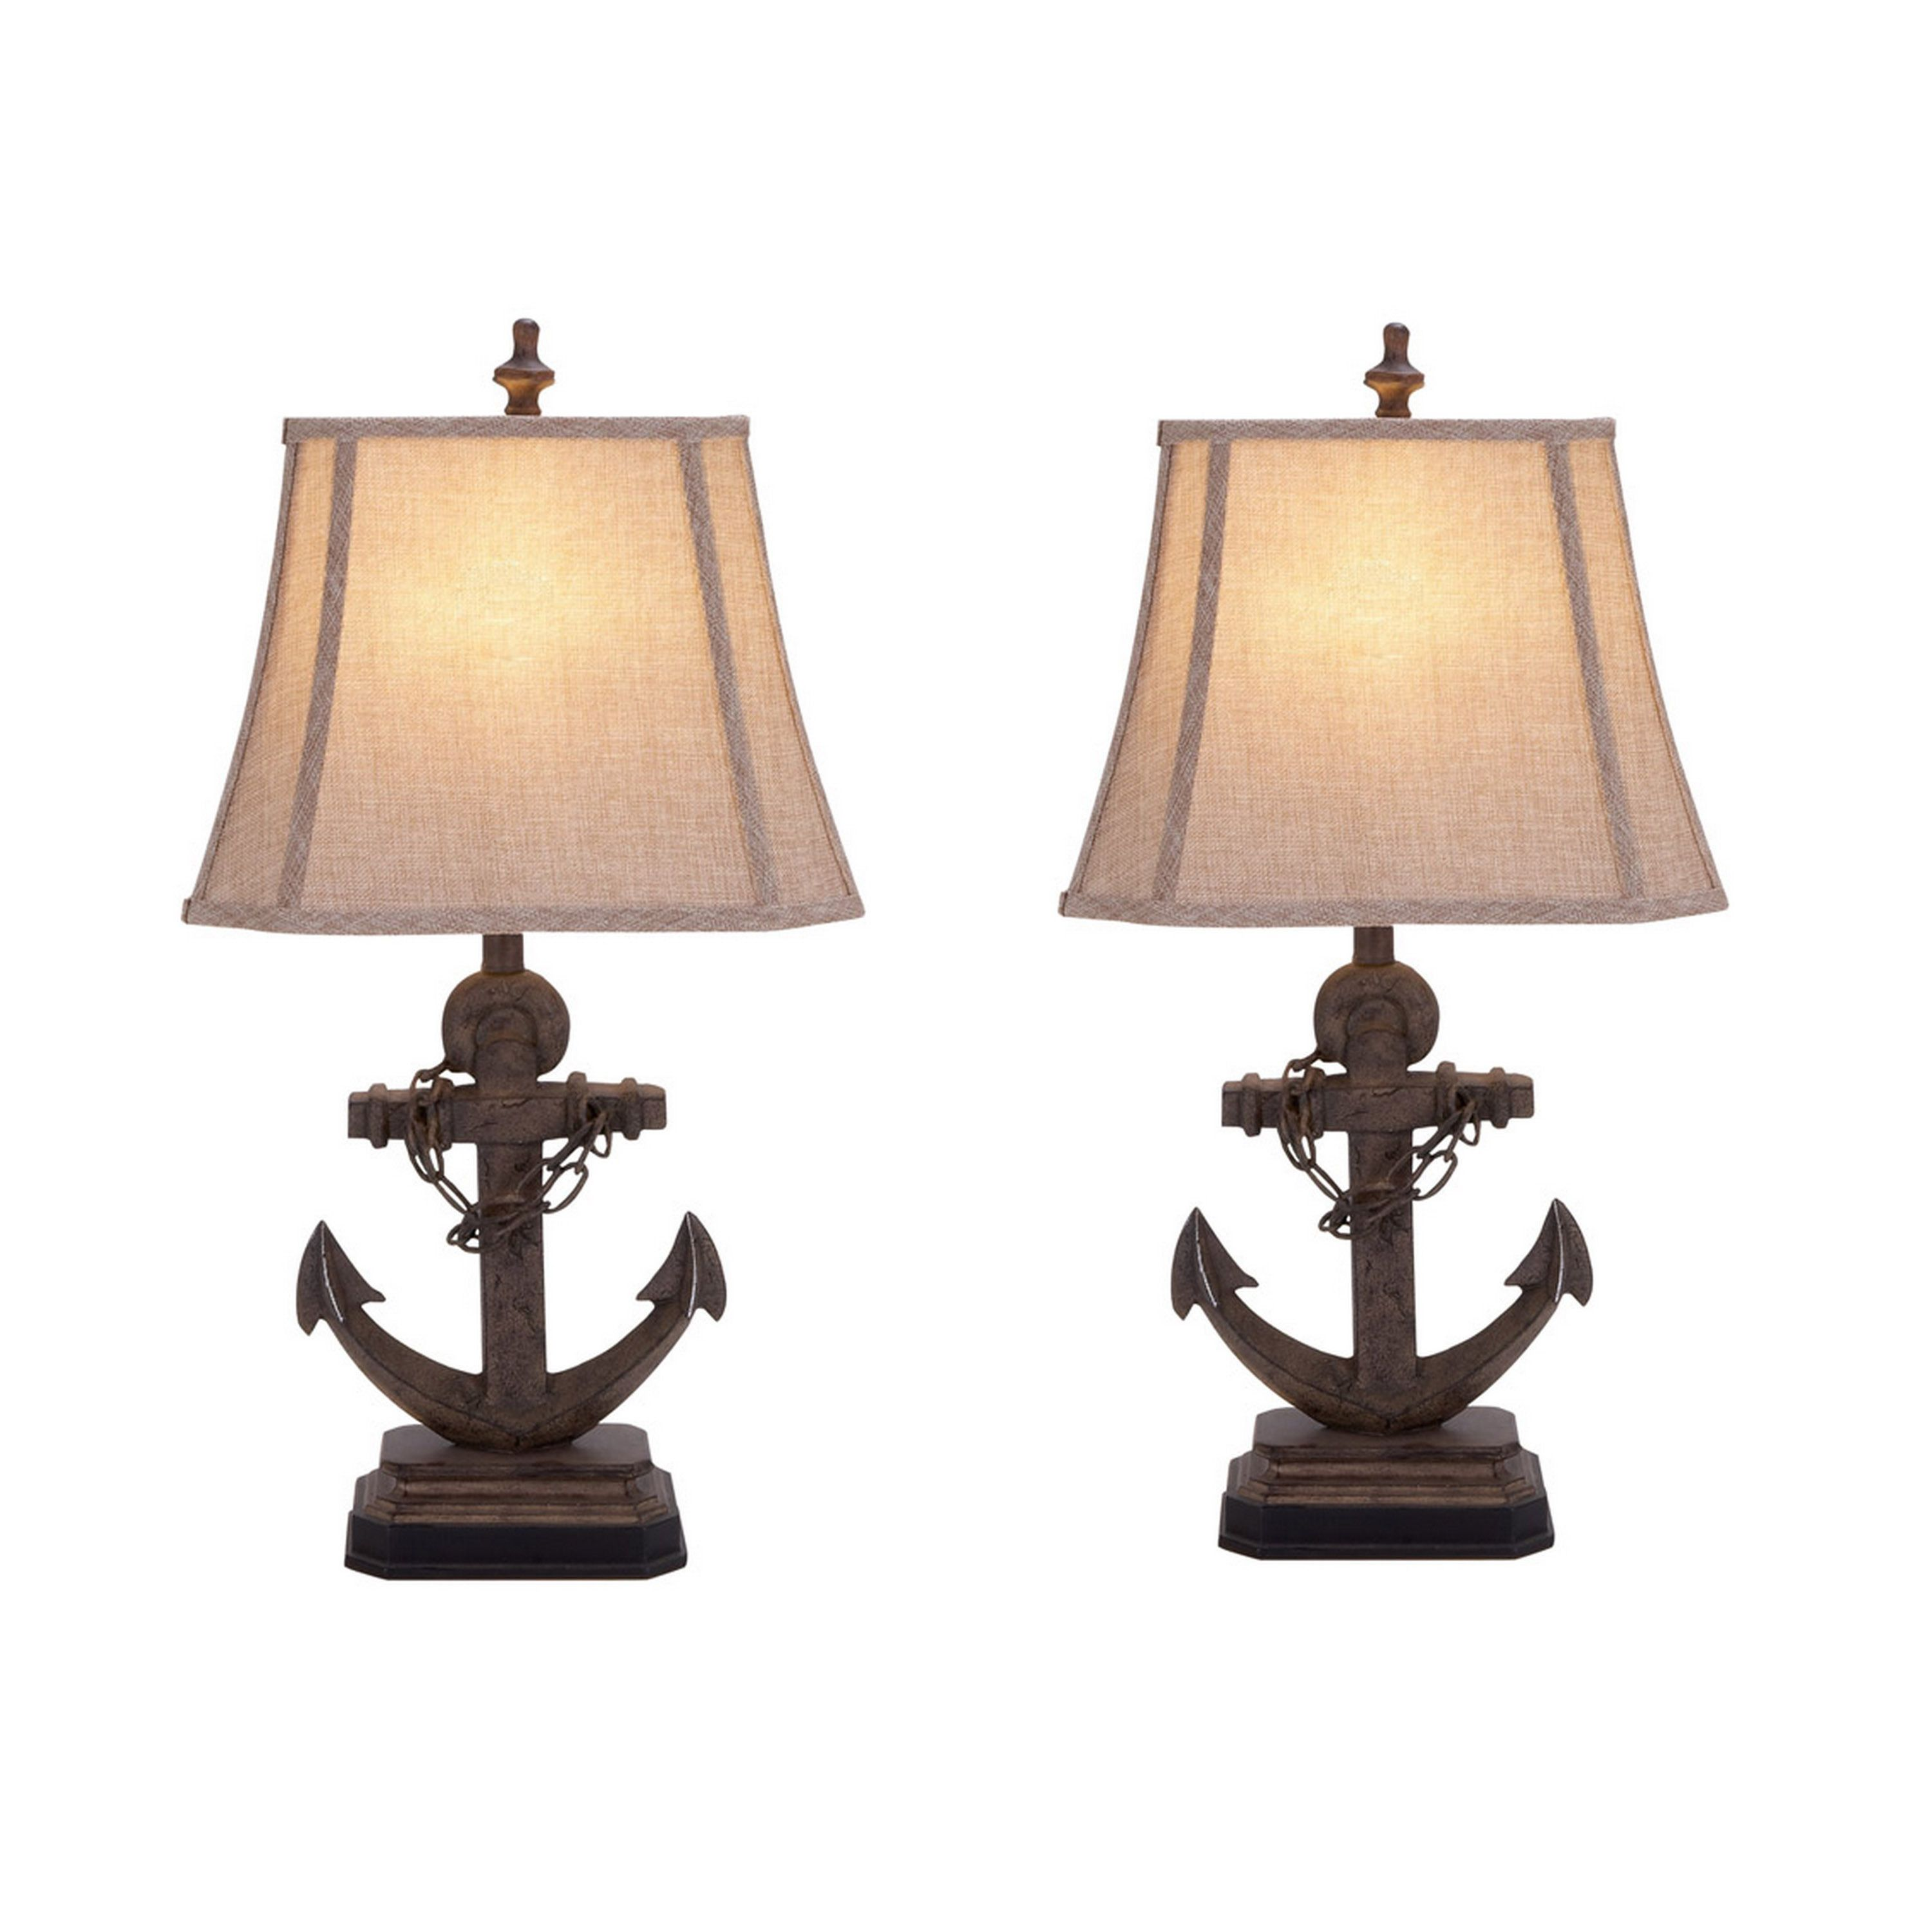 Online Shopping Bedding Furniture Electronics Jewelry Clothing More Table Lamp Sets Lamp Lamp Sets